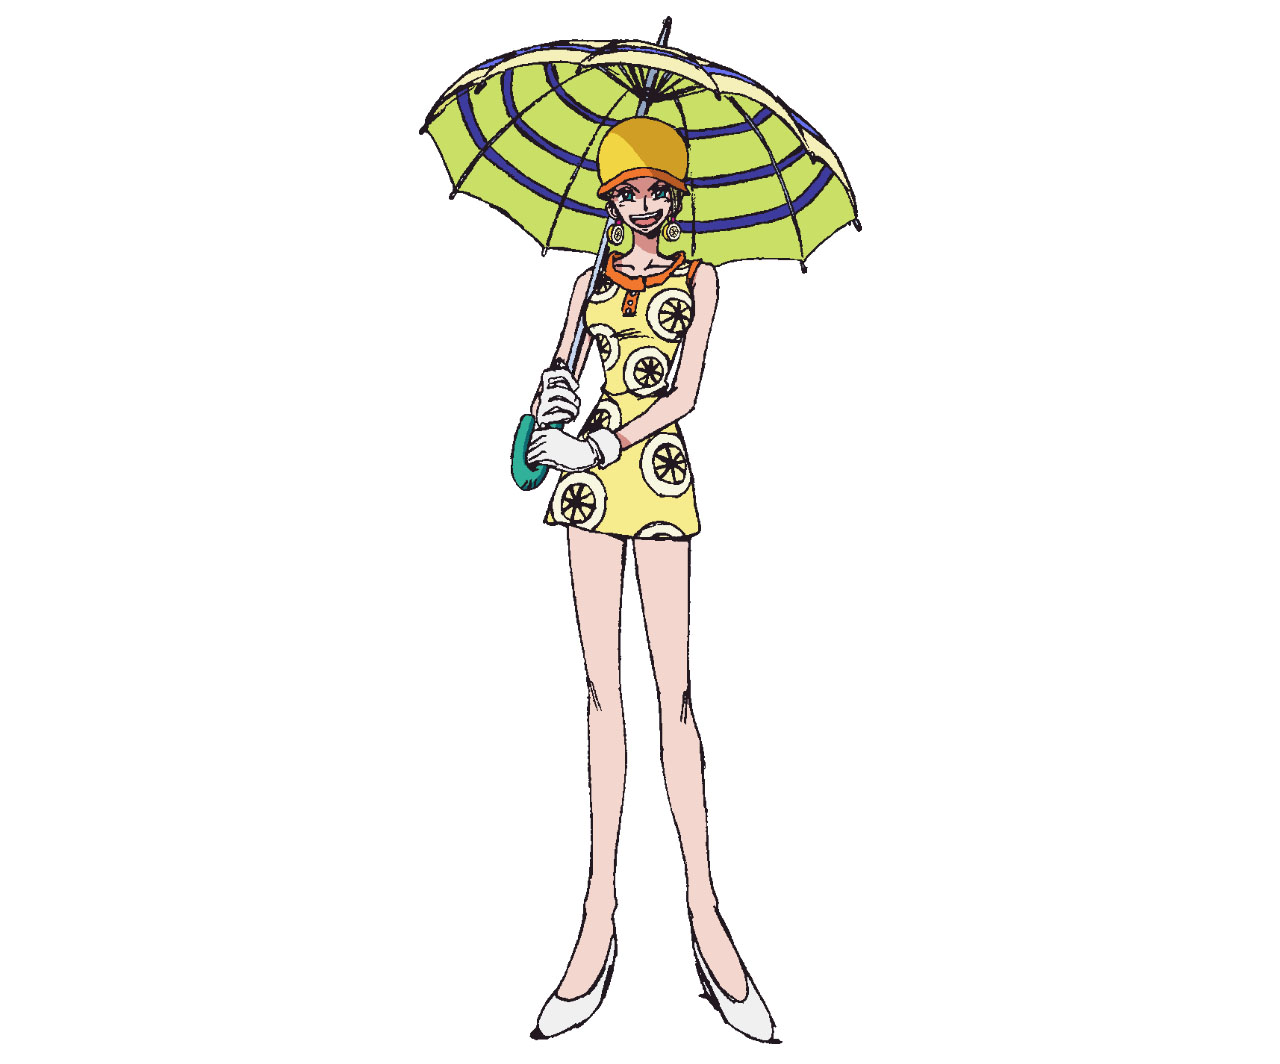 https://one-piece.com/assets/images/anime/character/data/Ms_Valentine/img.jpg